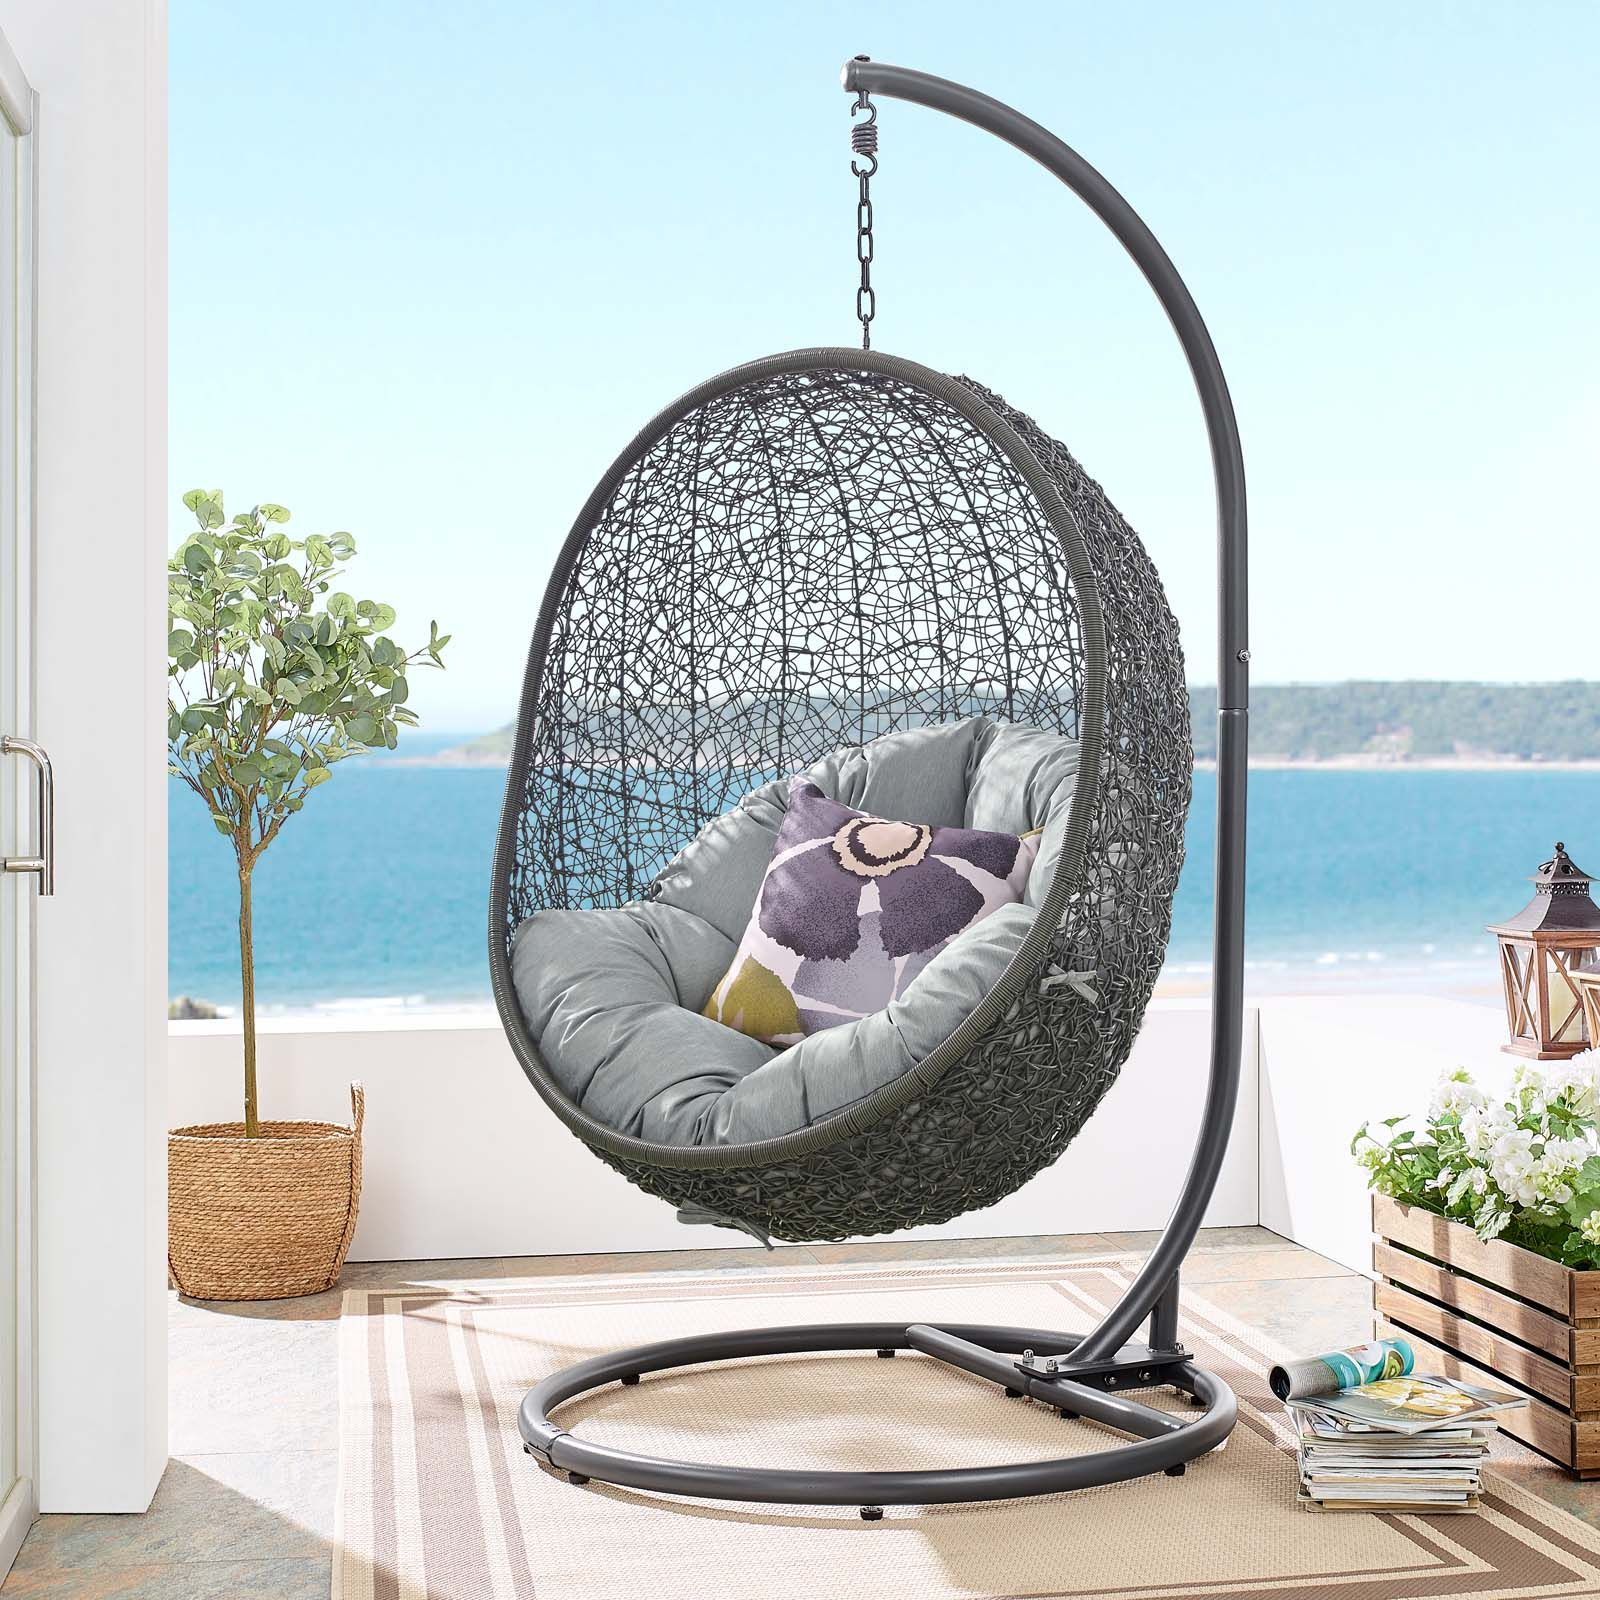 Our Best Patio Furniture Deals Outdoor Patio Swing Patio Swing Chair Patio Swing